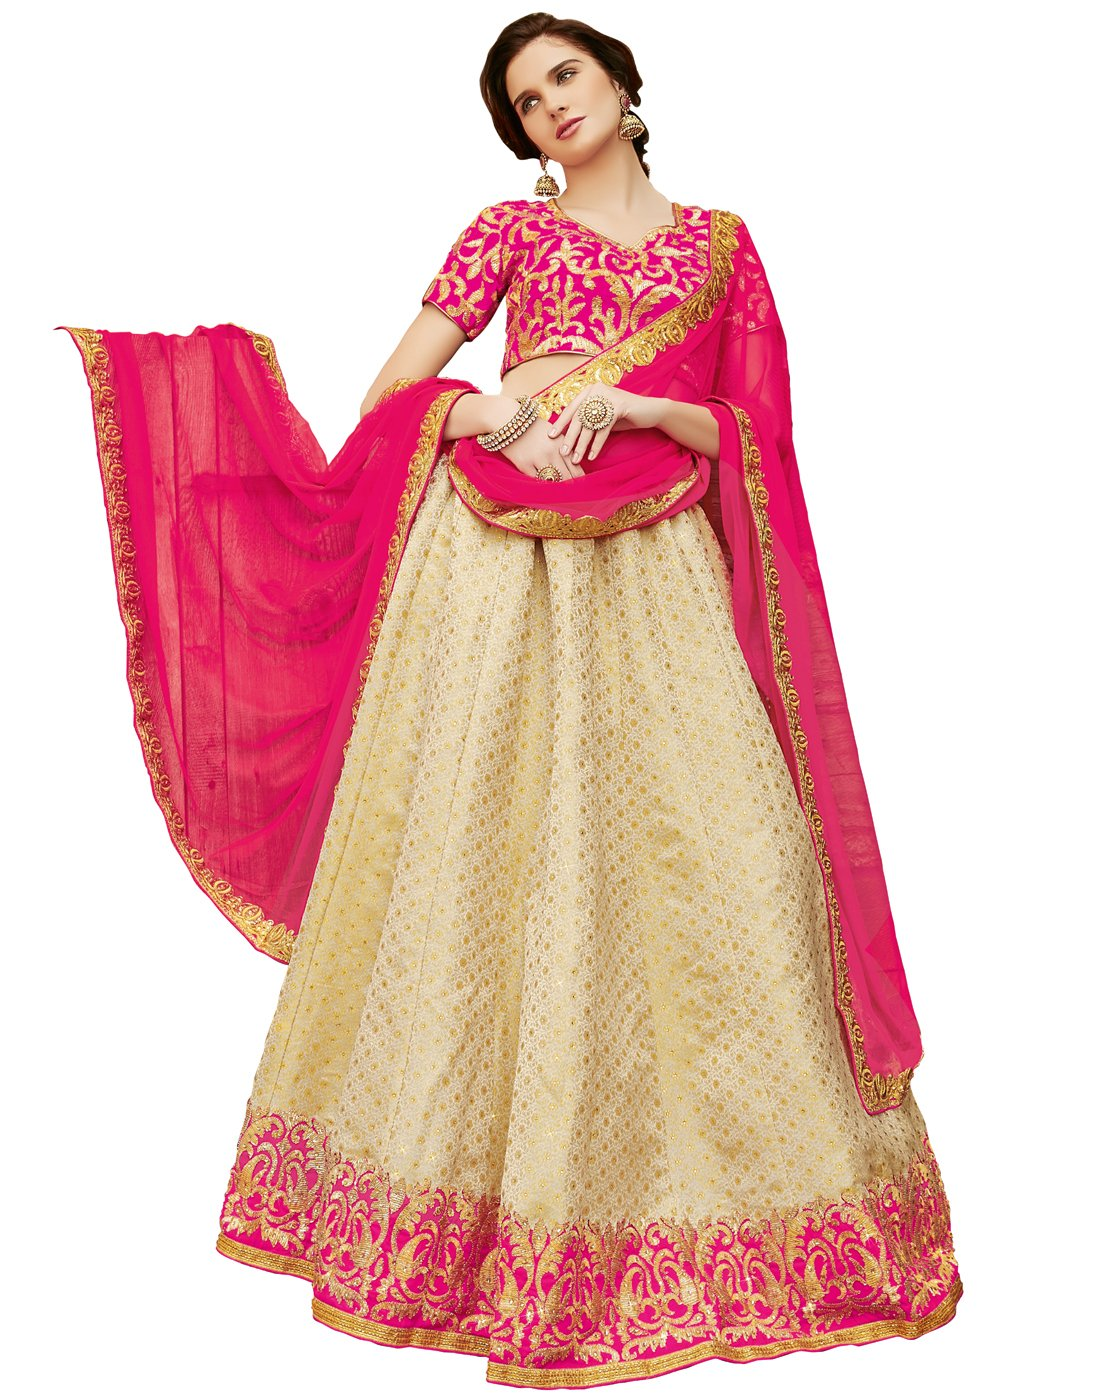 DesiButik's Wedding Wear Pleasant Beige Brocade Lehenga